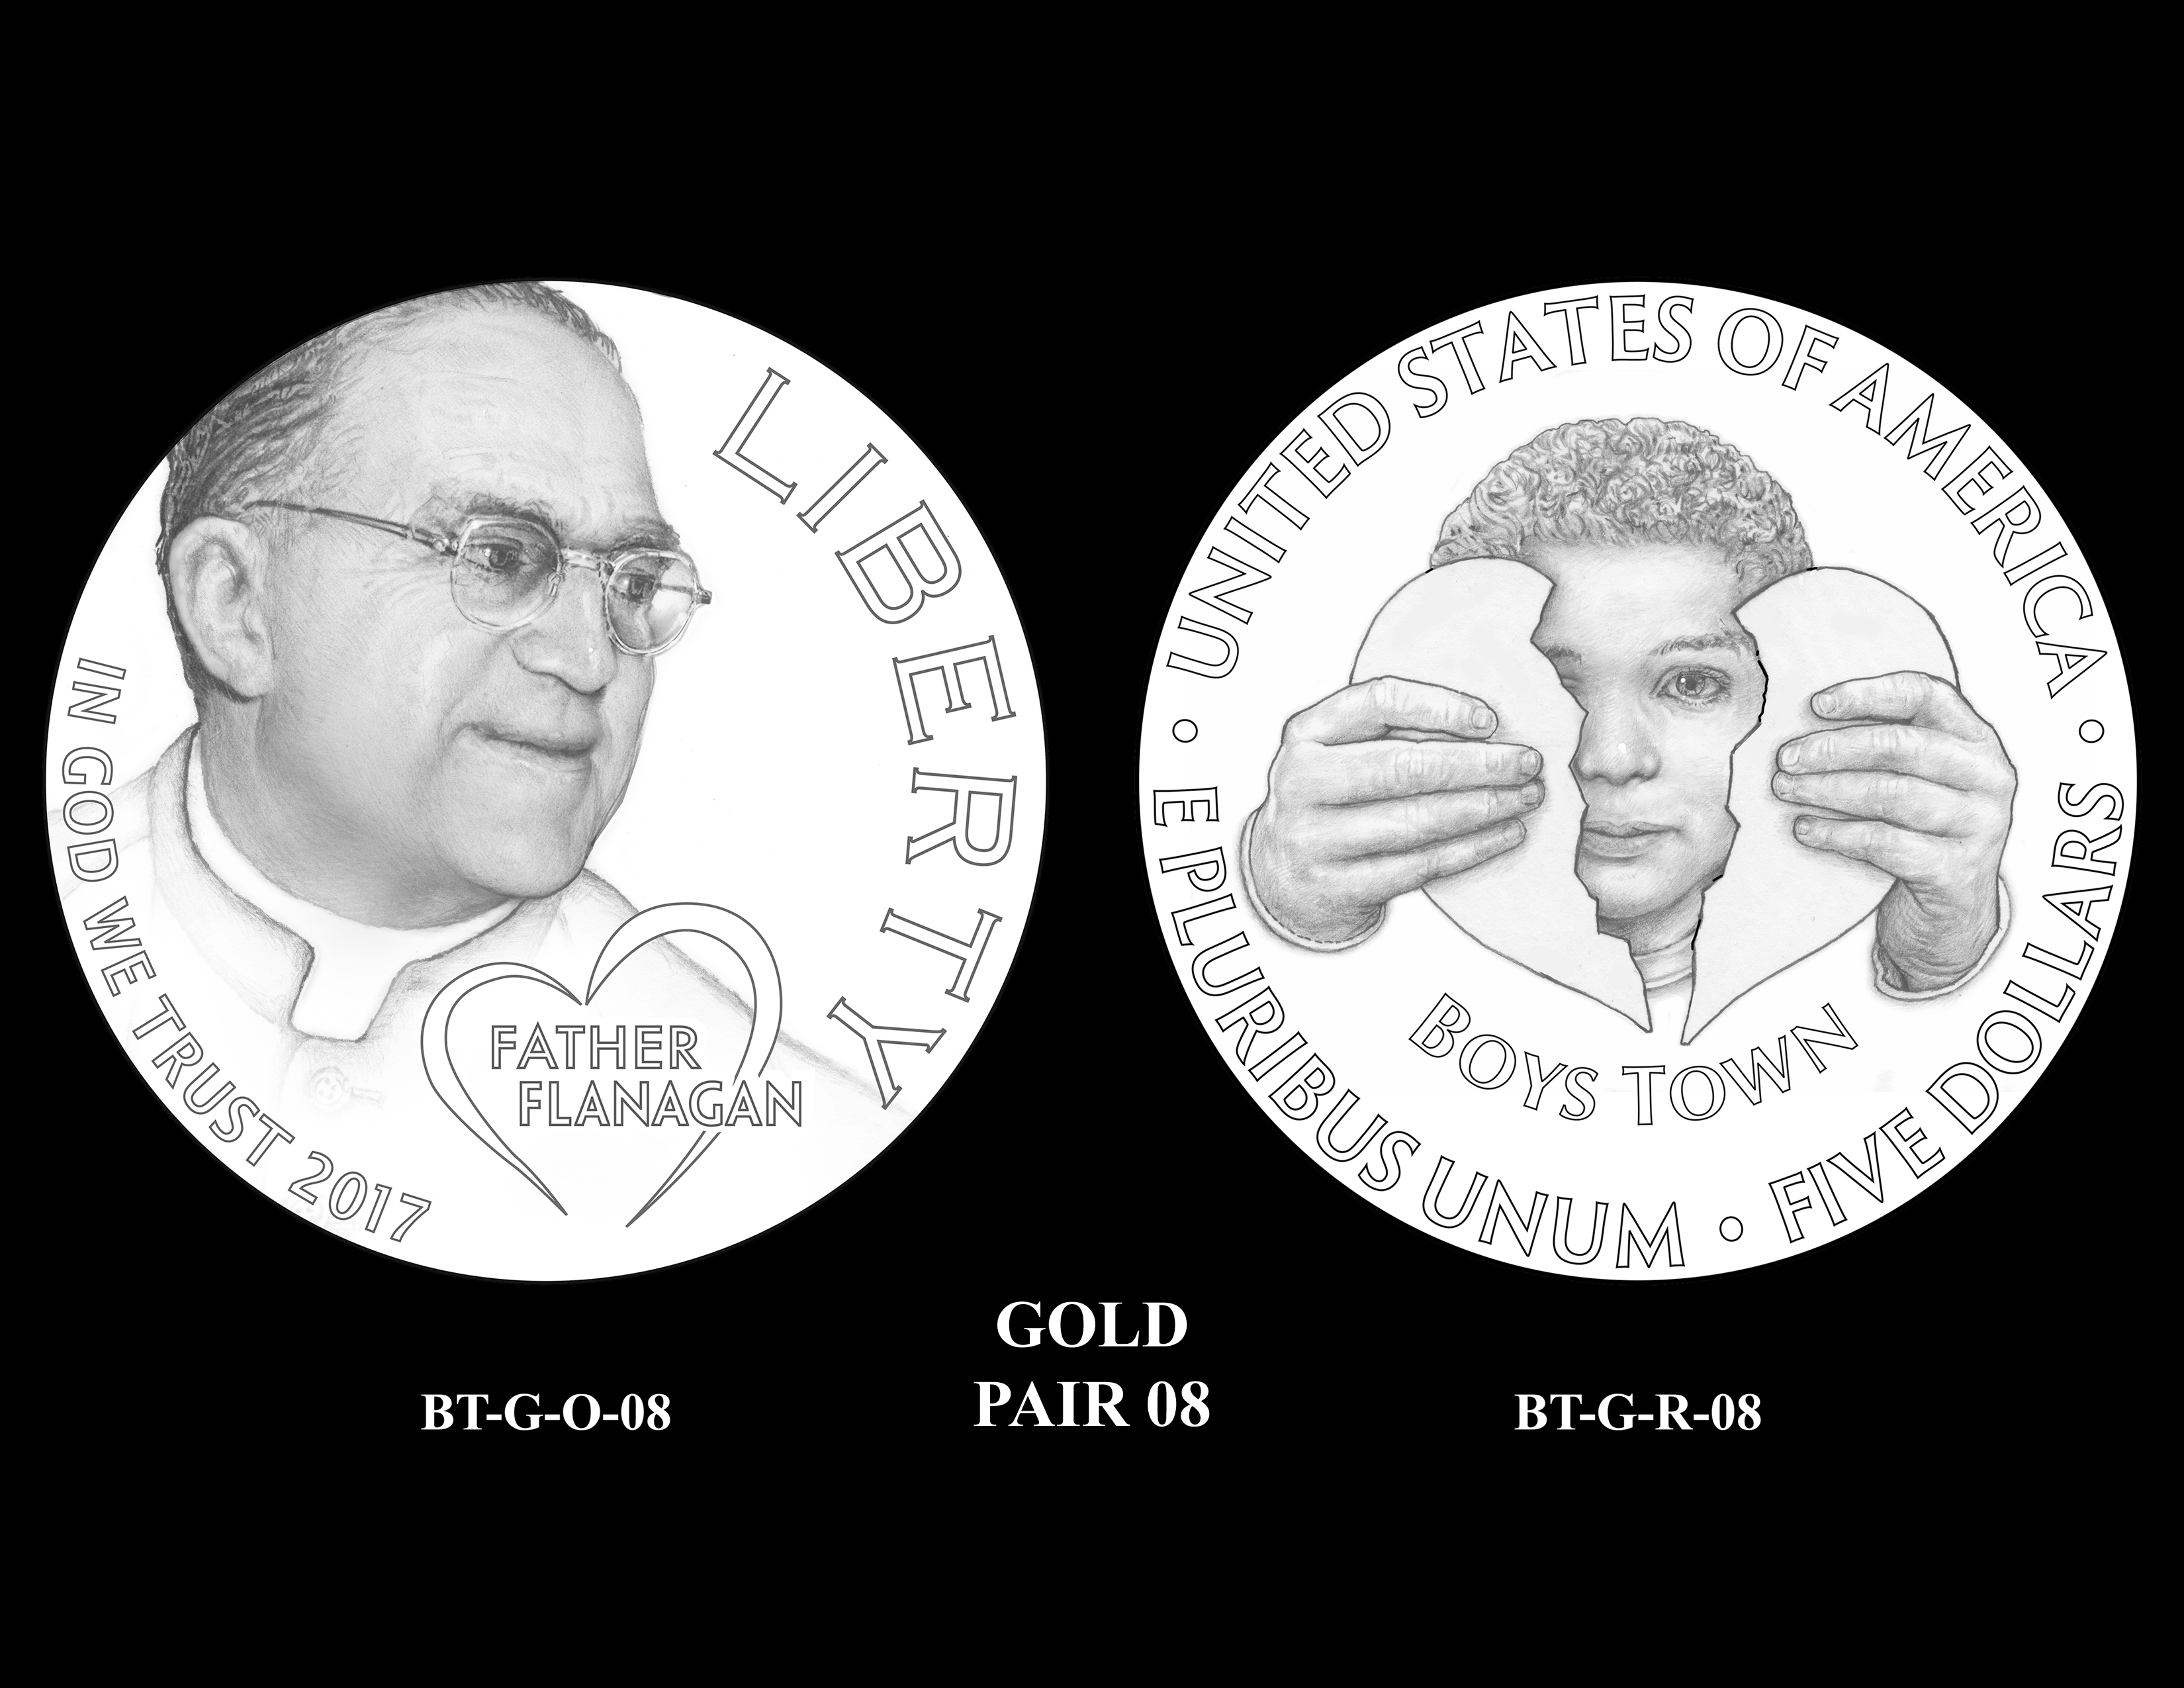 Gold-Pair-08 -- 2017 Boystown Centennial Commemorative Coin  Program